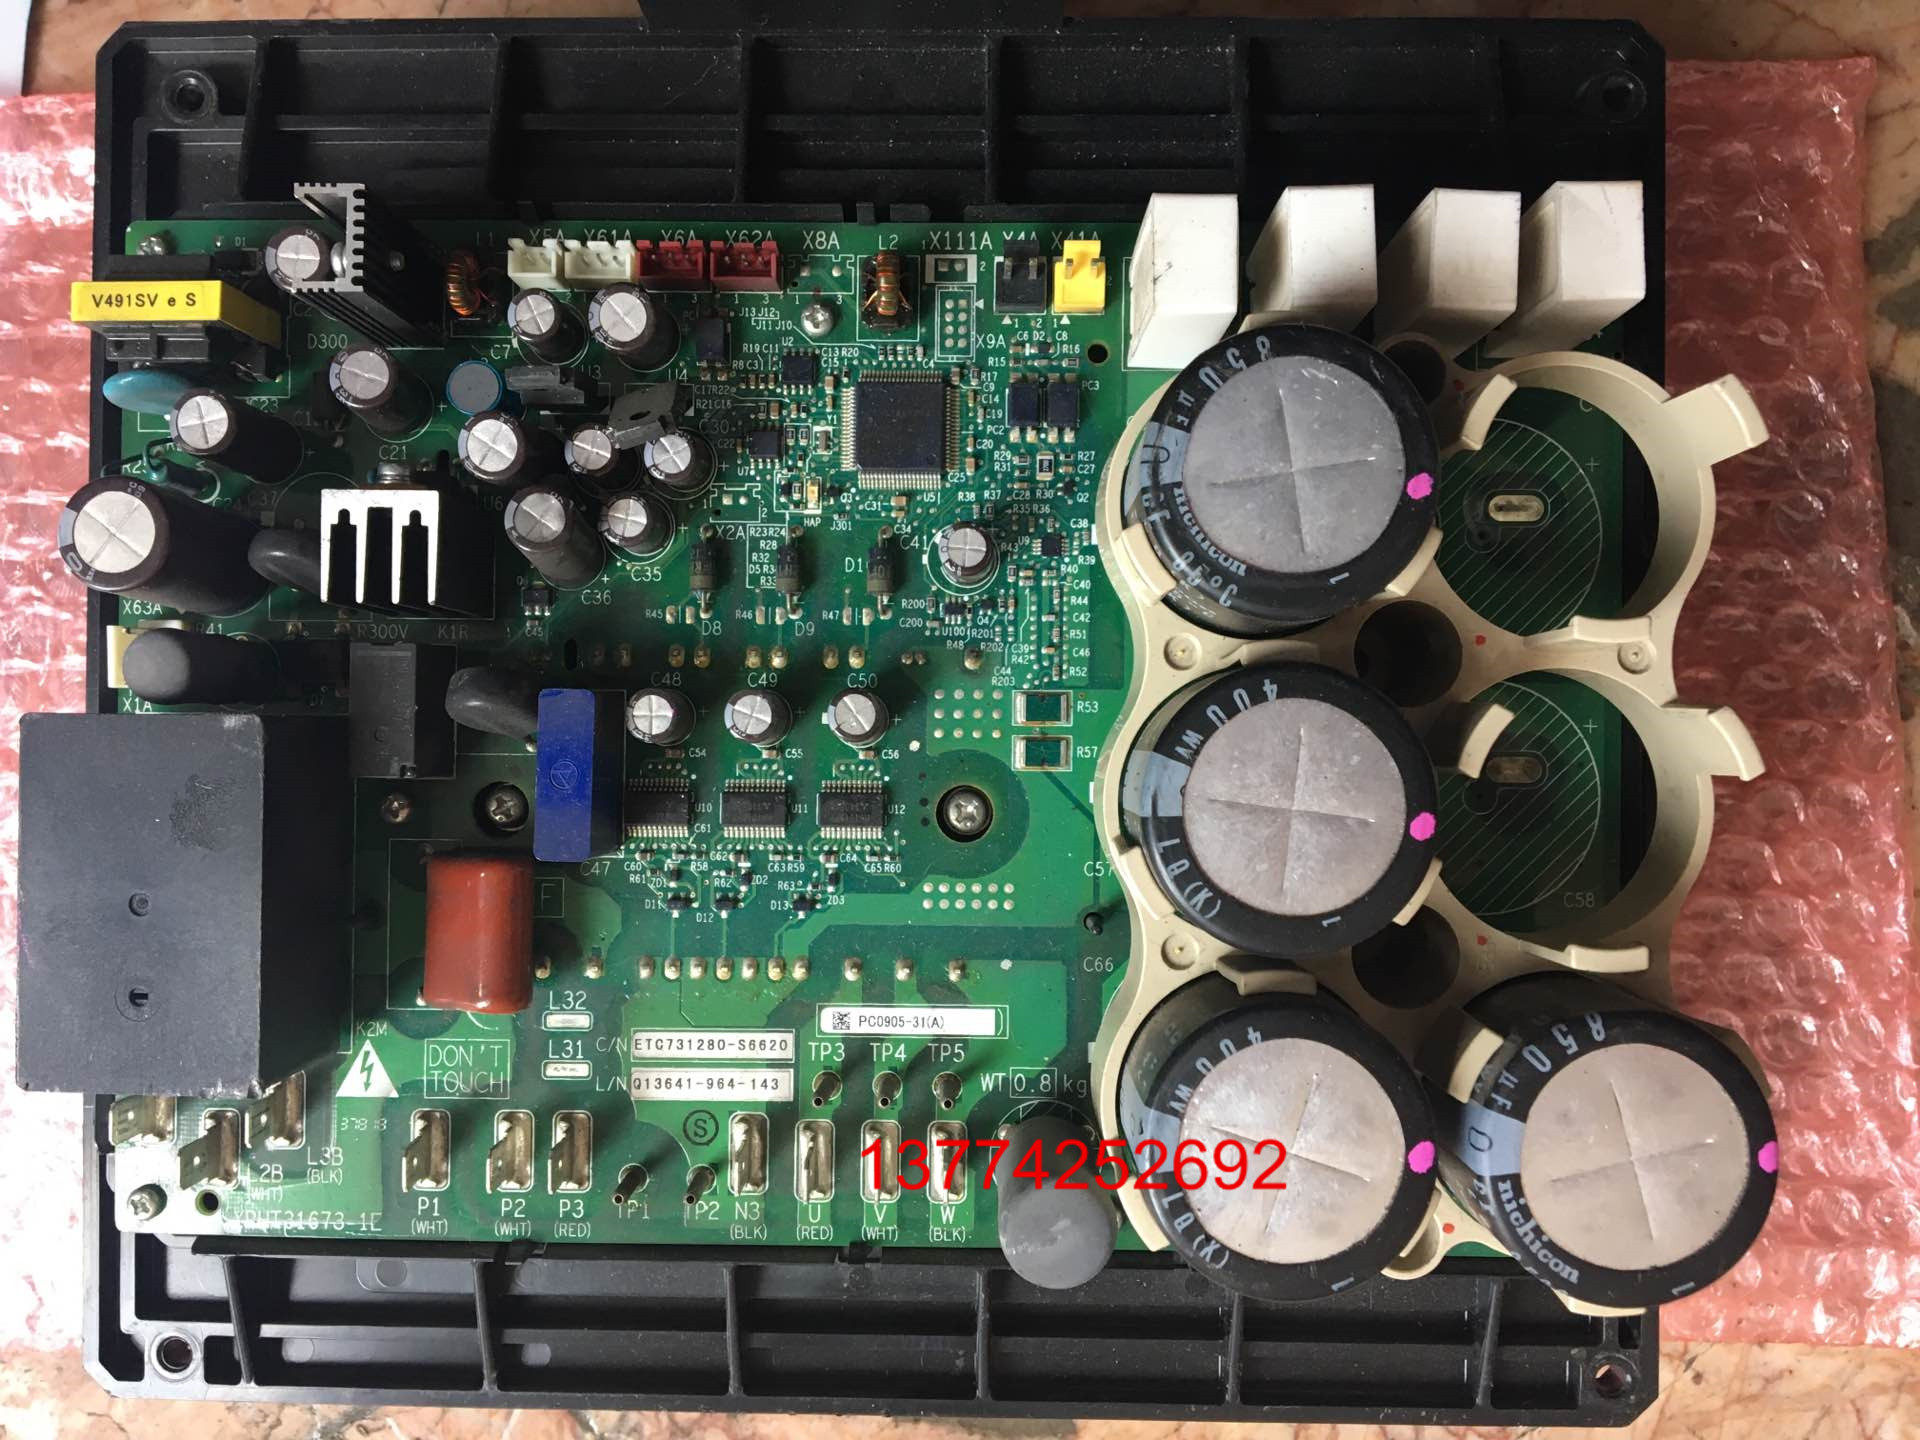 Daikin plate PC1132-31 (B) PC0905-1 (A) Daikin RZP250SY1 frequency conversion board